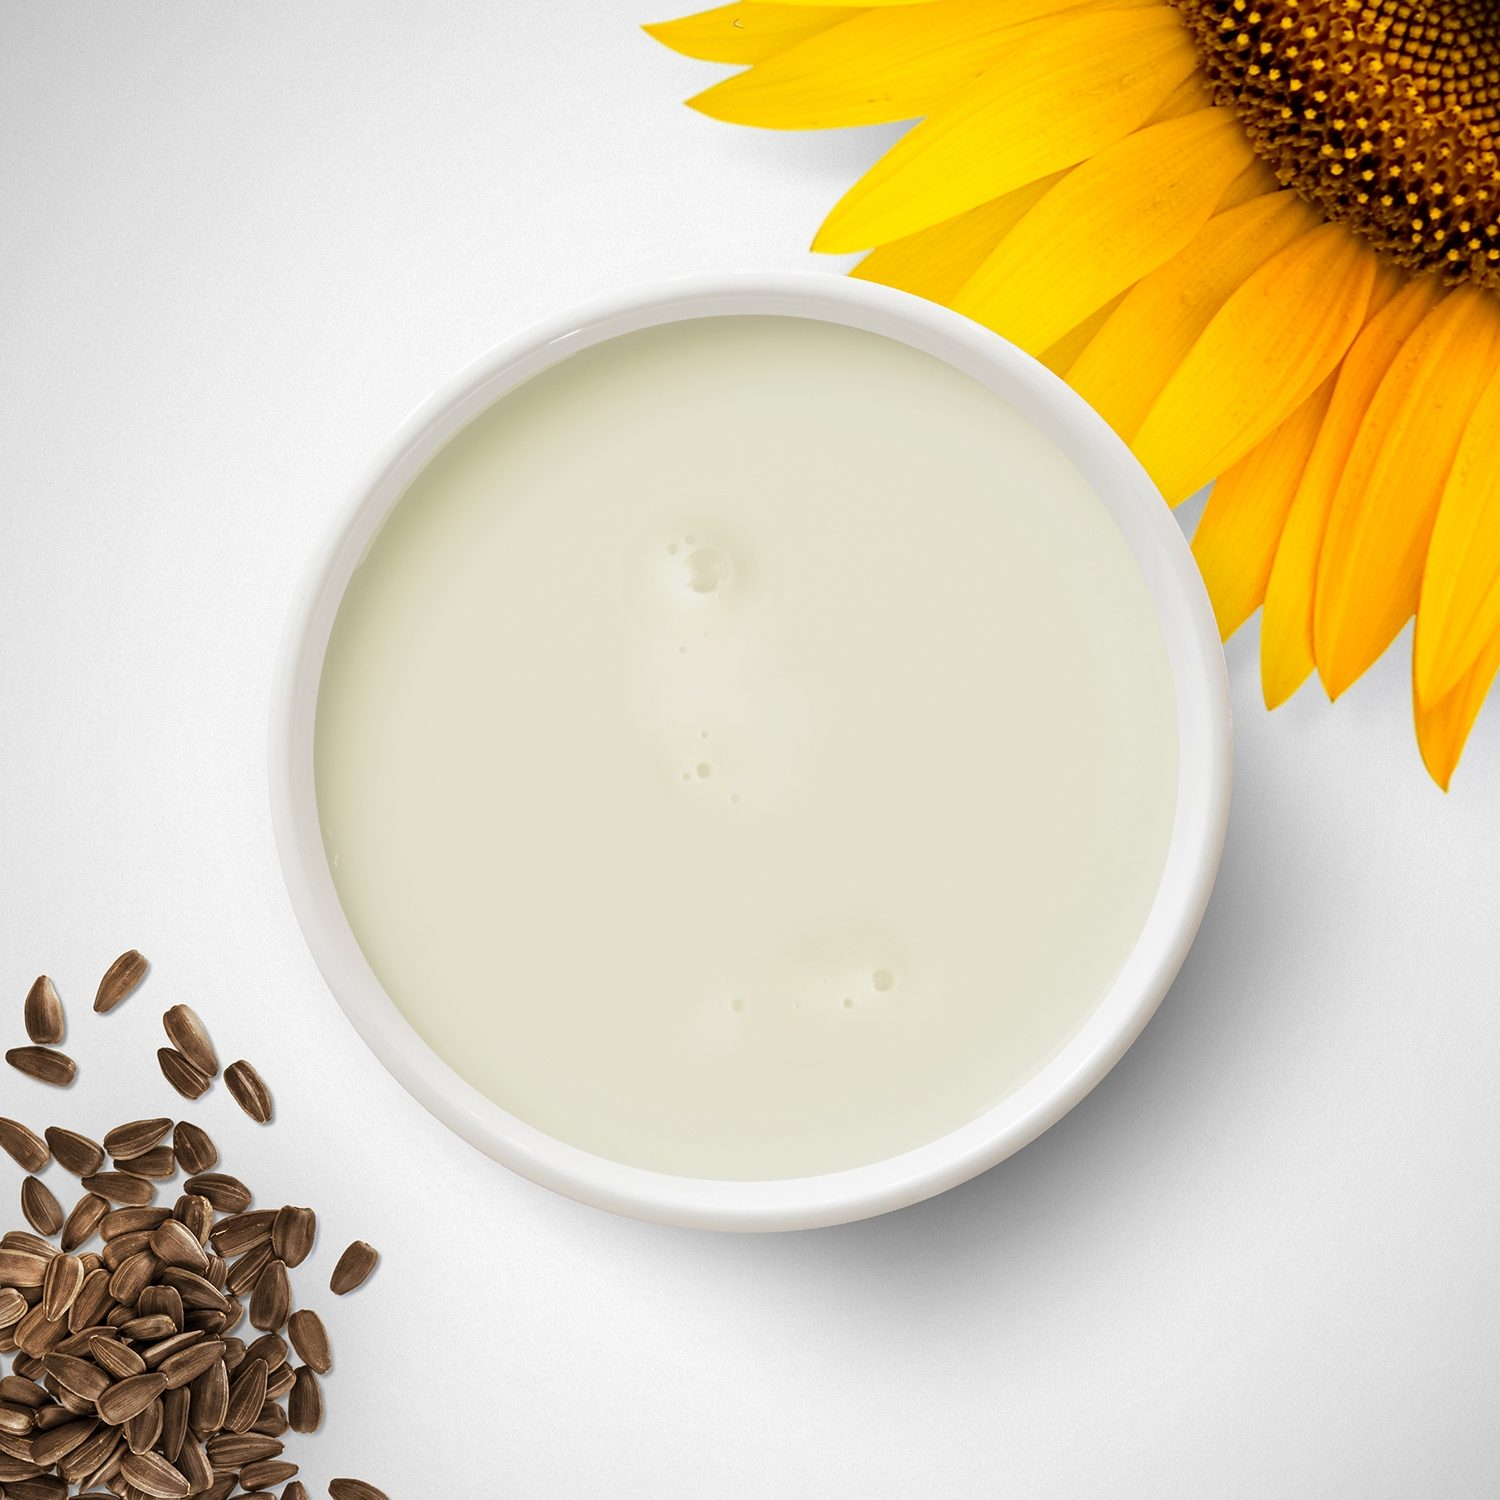 Creamy liquid in a bowl with sunflower petals and seeds around the edge.